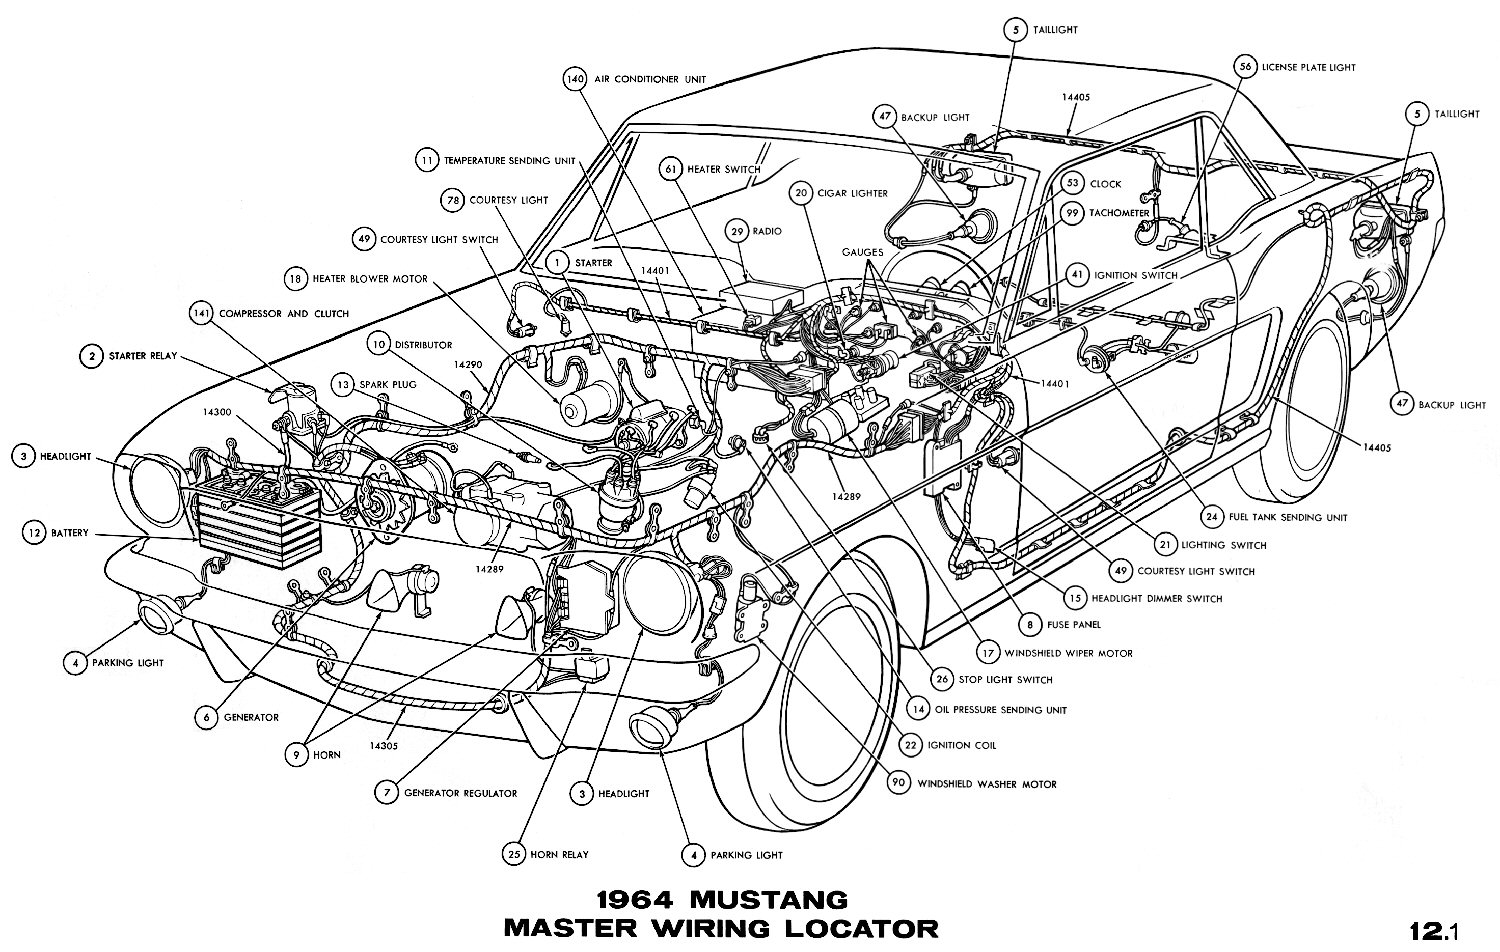 Mustang wiring and vacuum diagrams archives average joe restoration 1964 mustang master wiring pictorial continue reading 1964 mustang wiring diagrams sciox Gallery